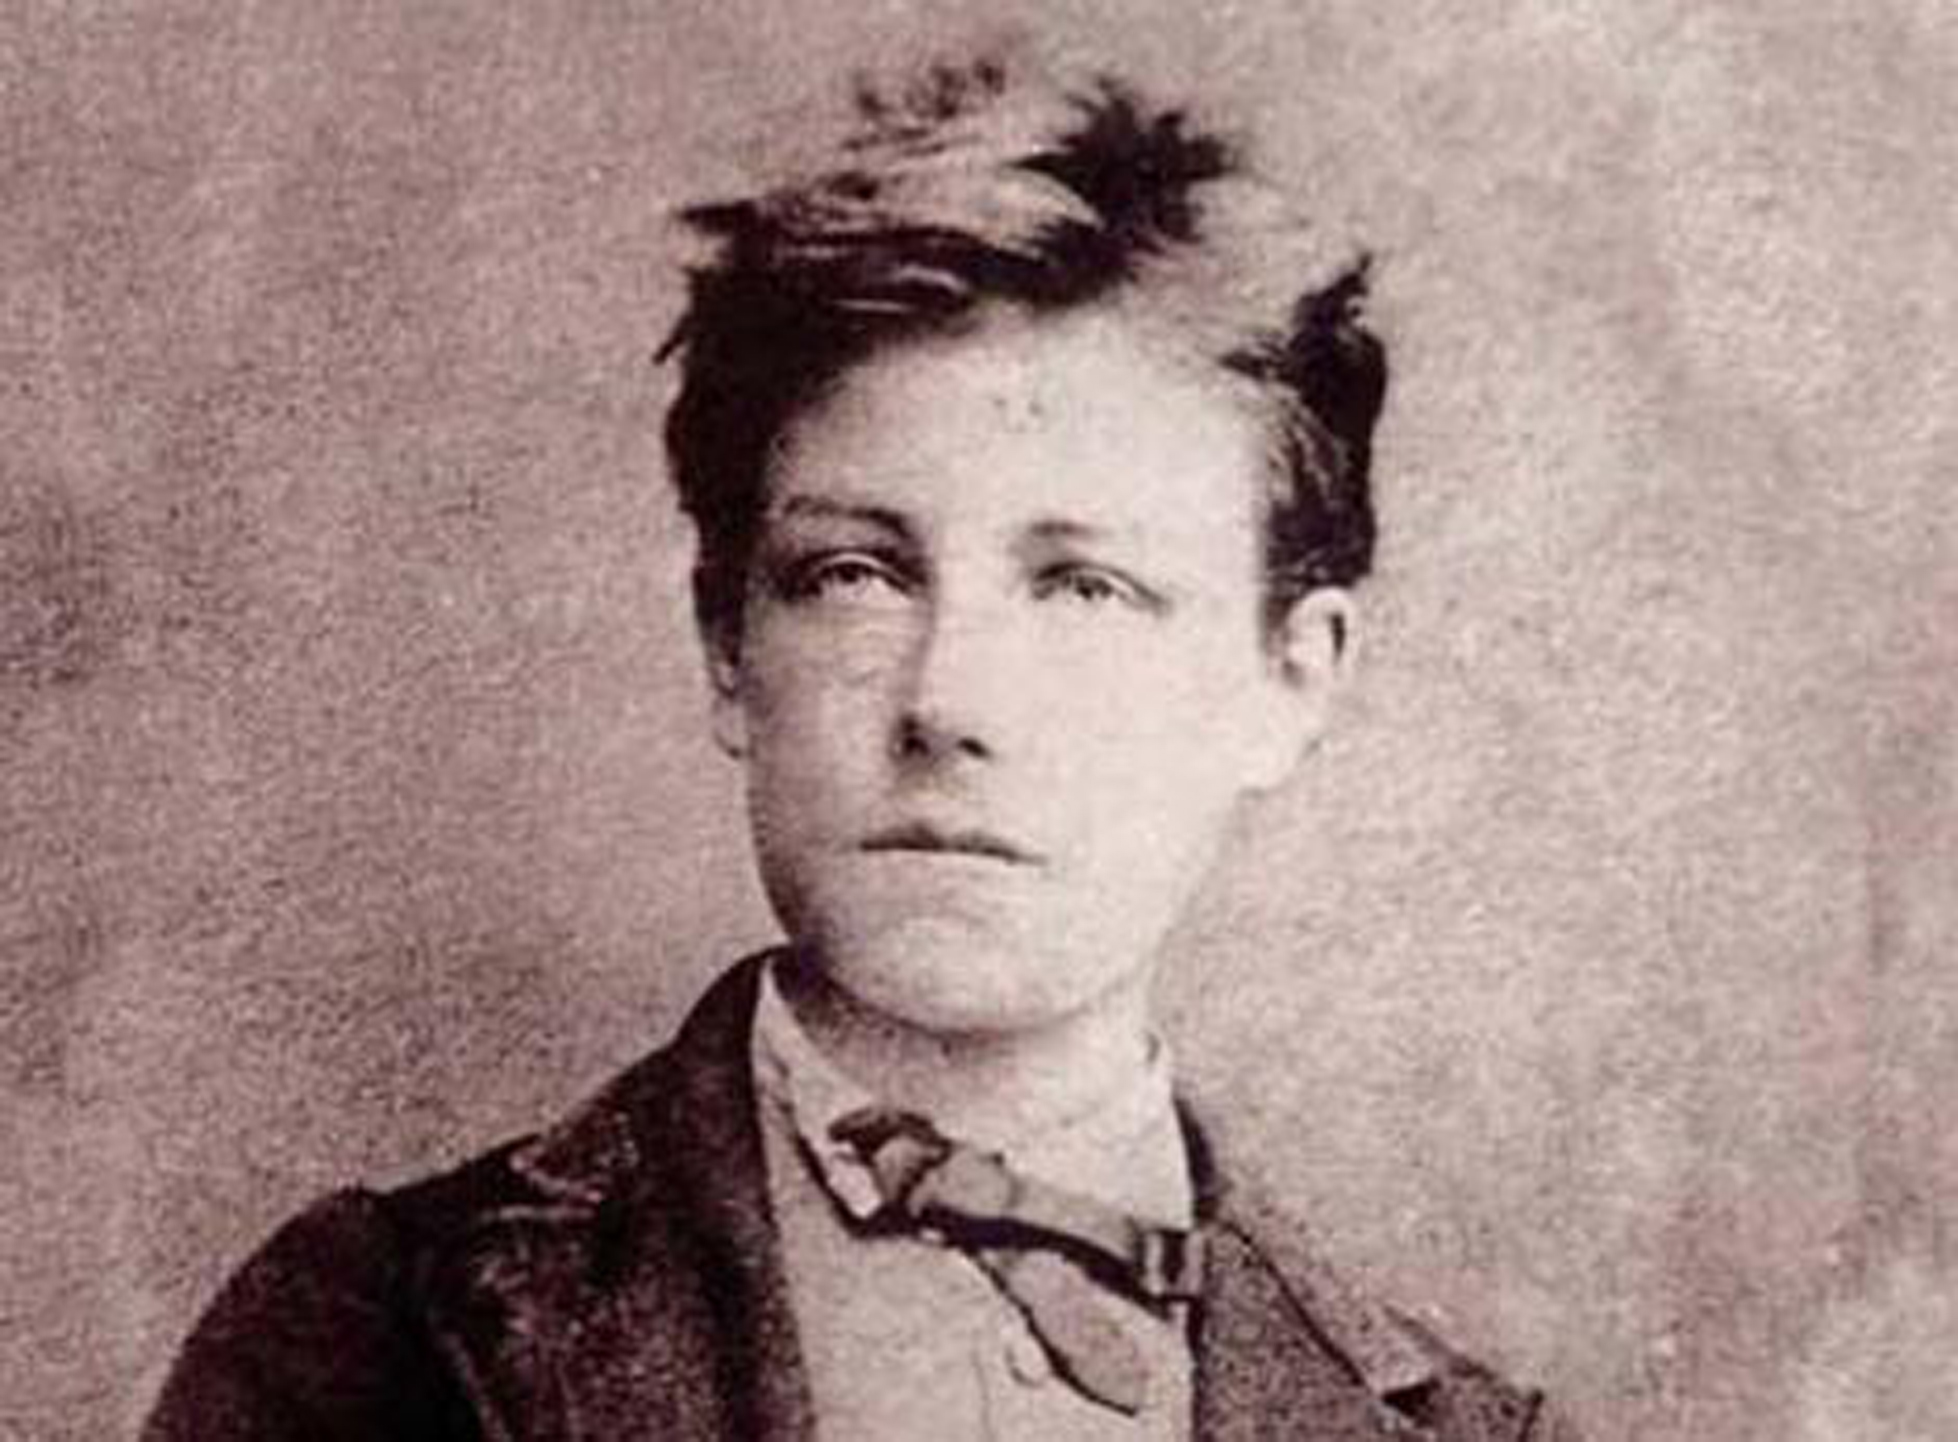 Rimbaud